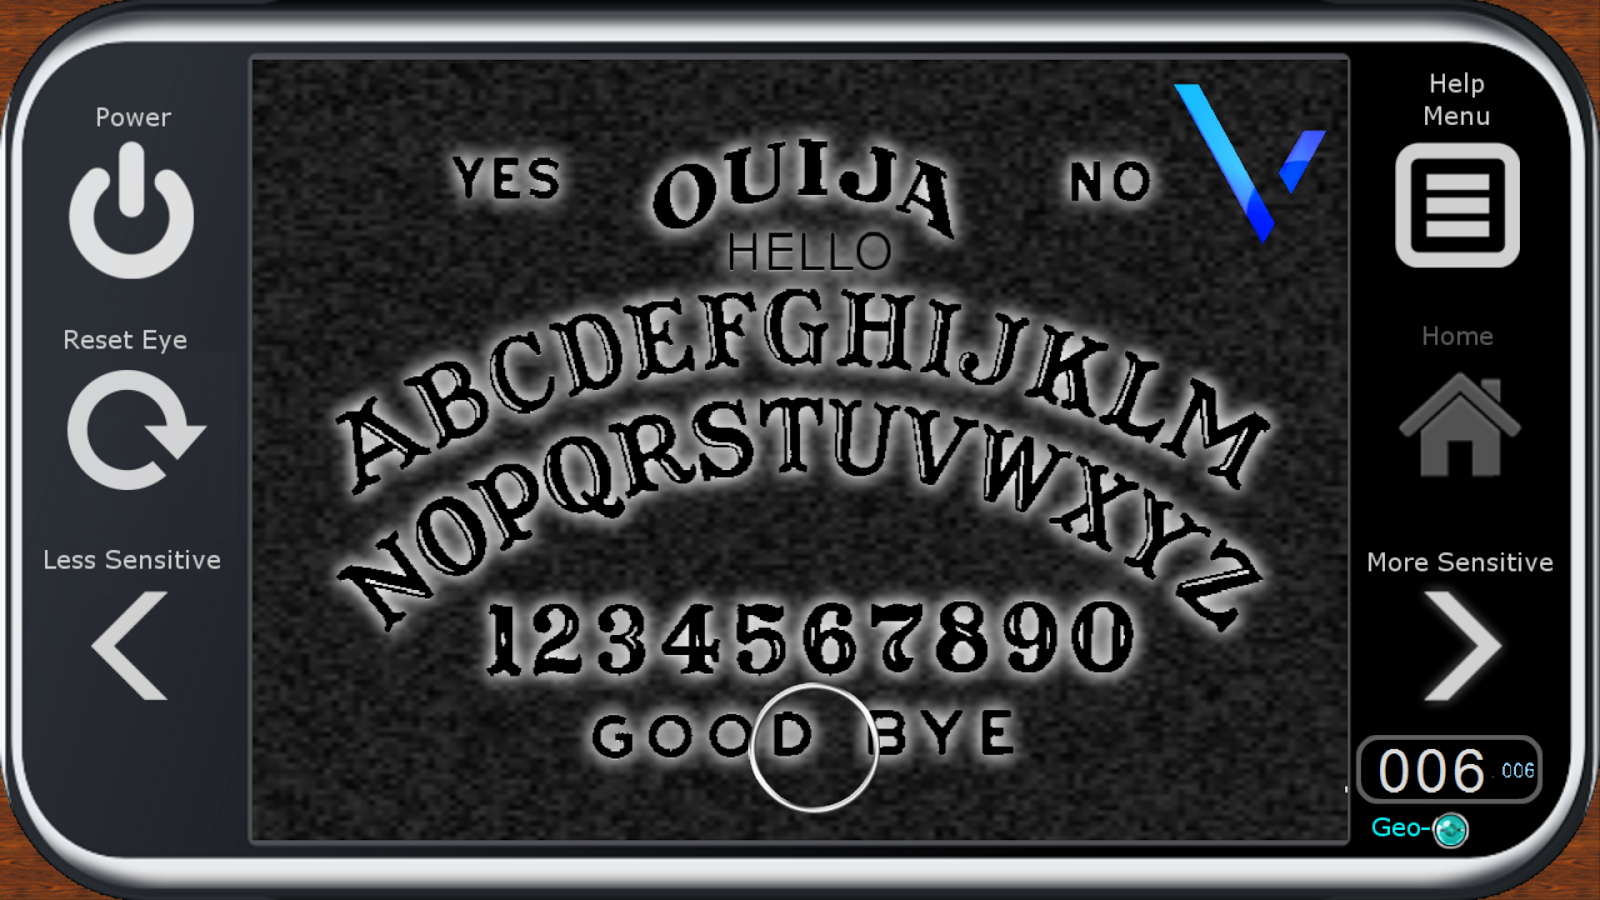 VBE OUIJA STATIC 1 1 APK Download - Android Tools Apps